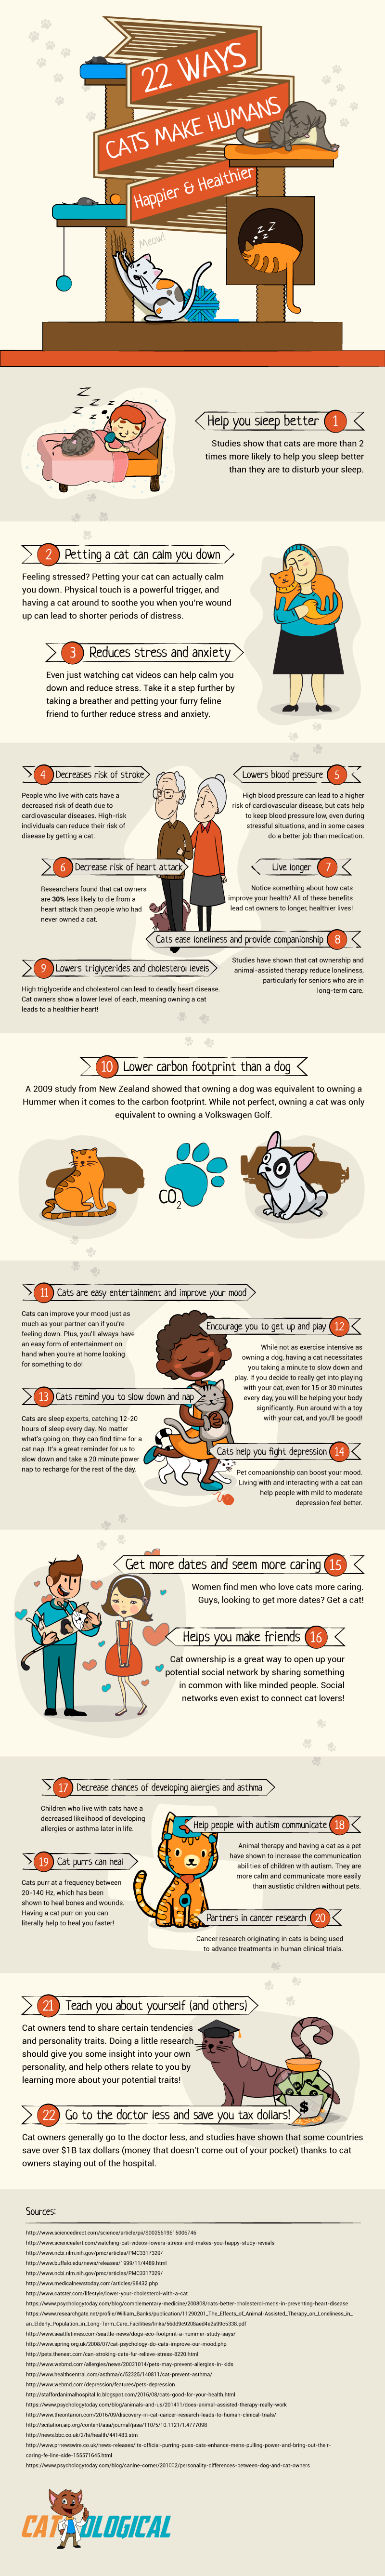 22_Ways_Cats_Make_Humans_Happier_And_Healthier.png